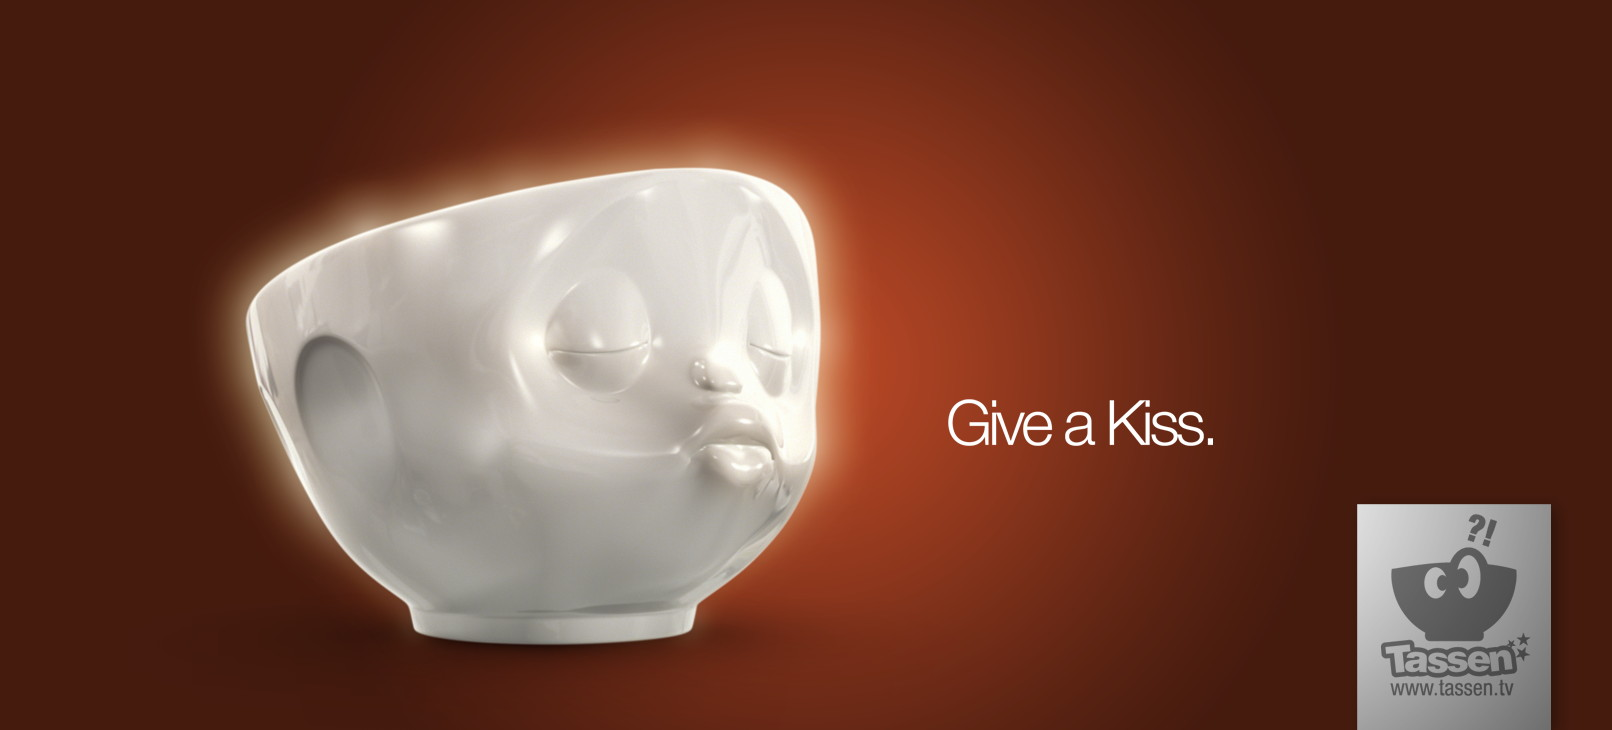 Give_a_Kiss